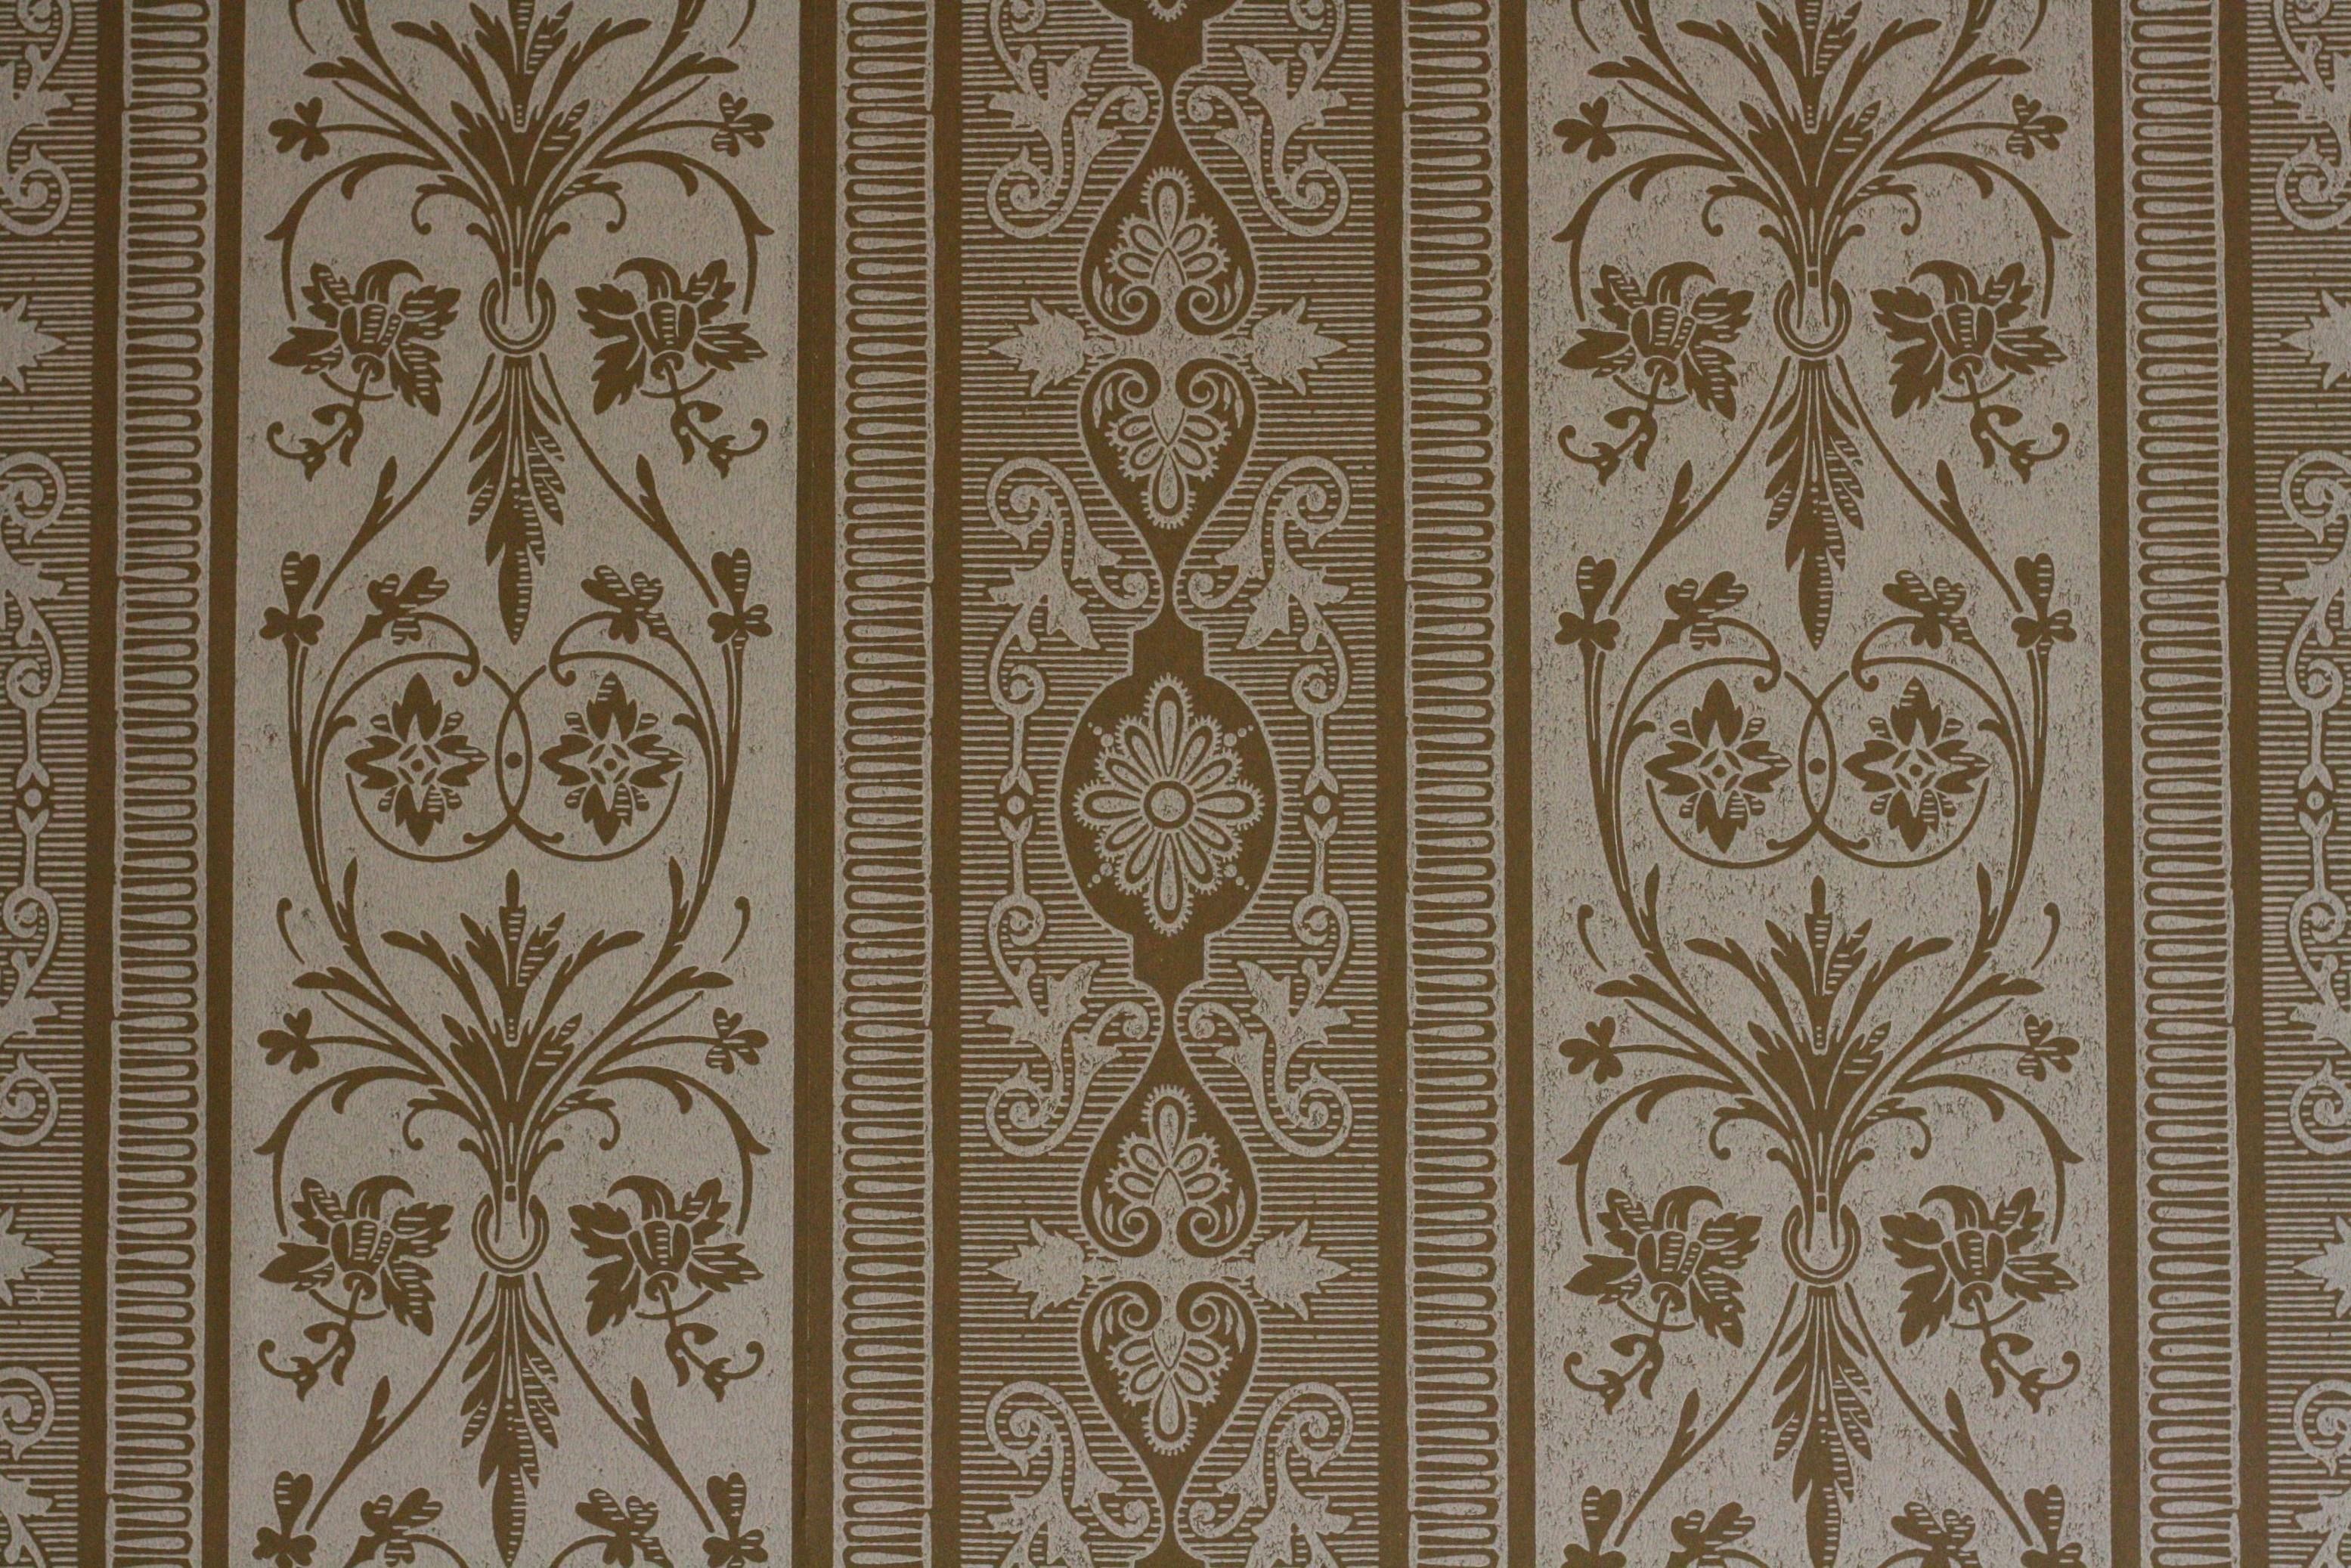 40 Stunning Texturized Wallpaper In 2020 Wall Wallpaper Textured Walls Textured Wallpaper